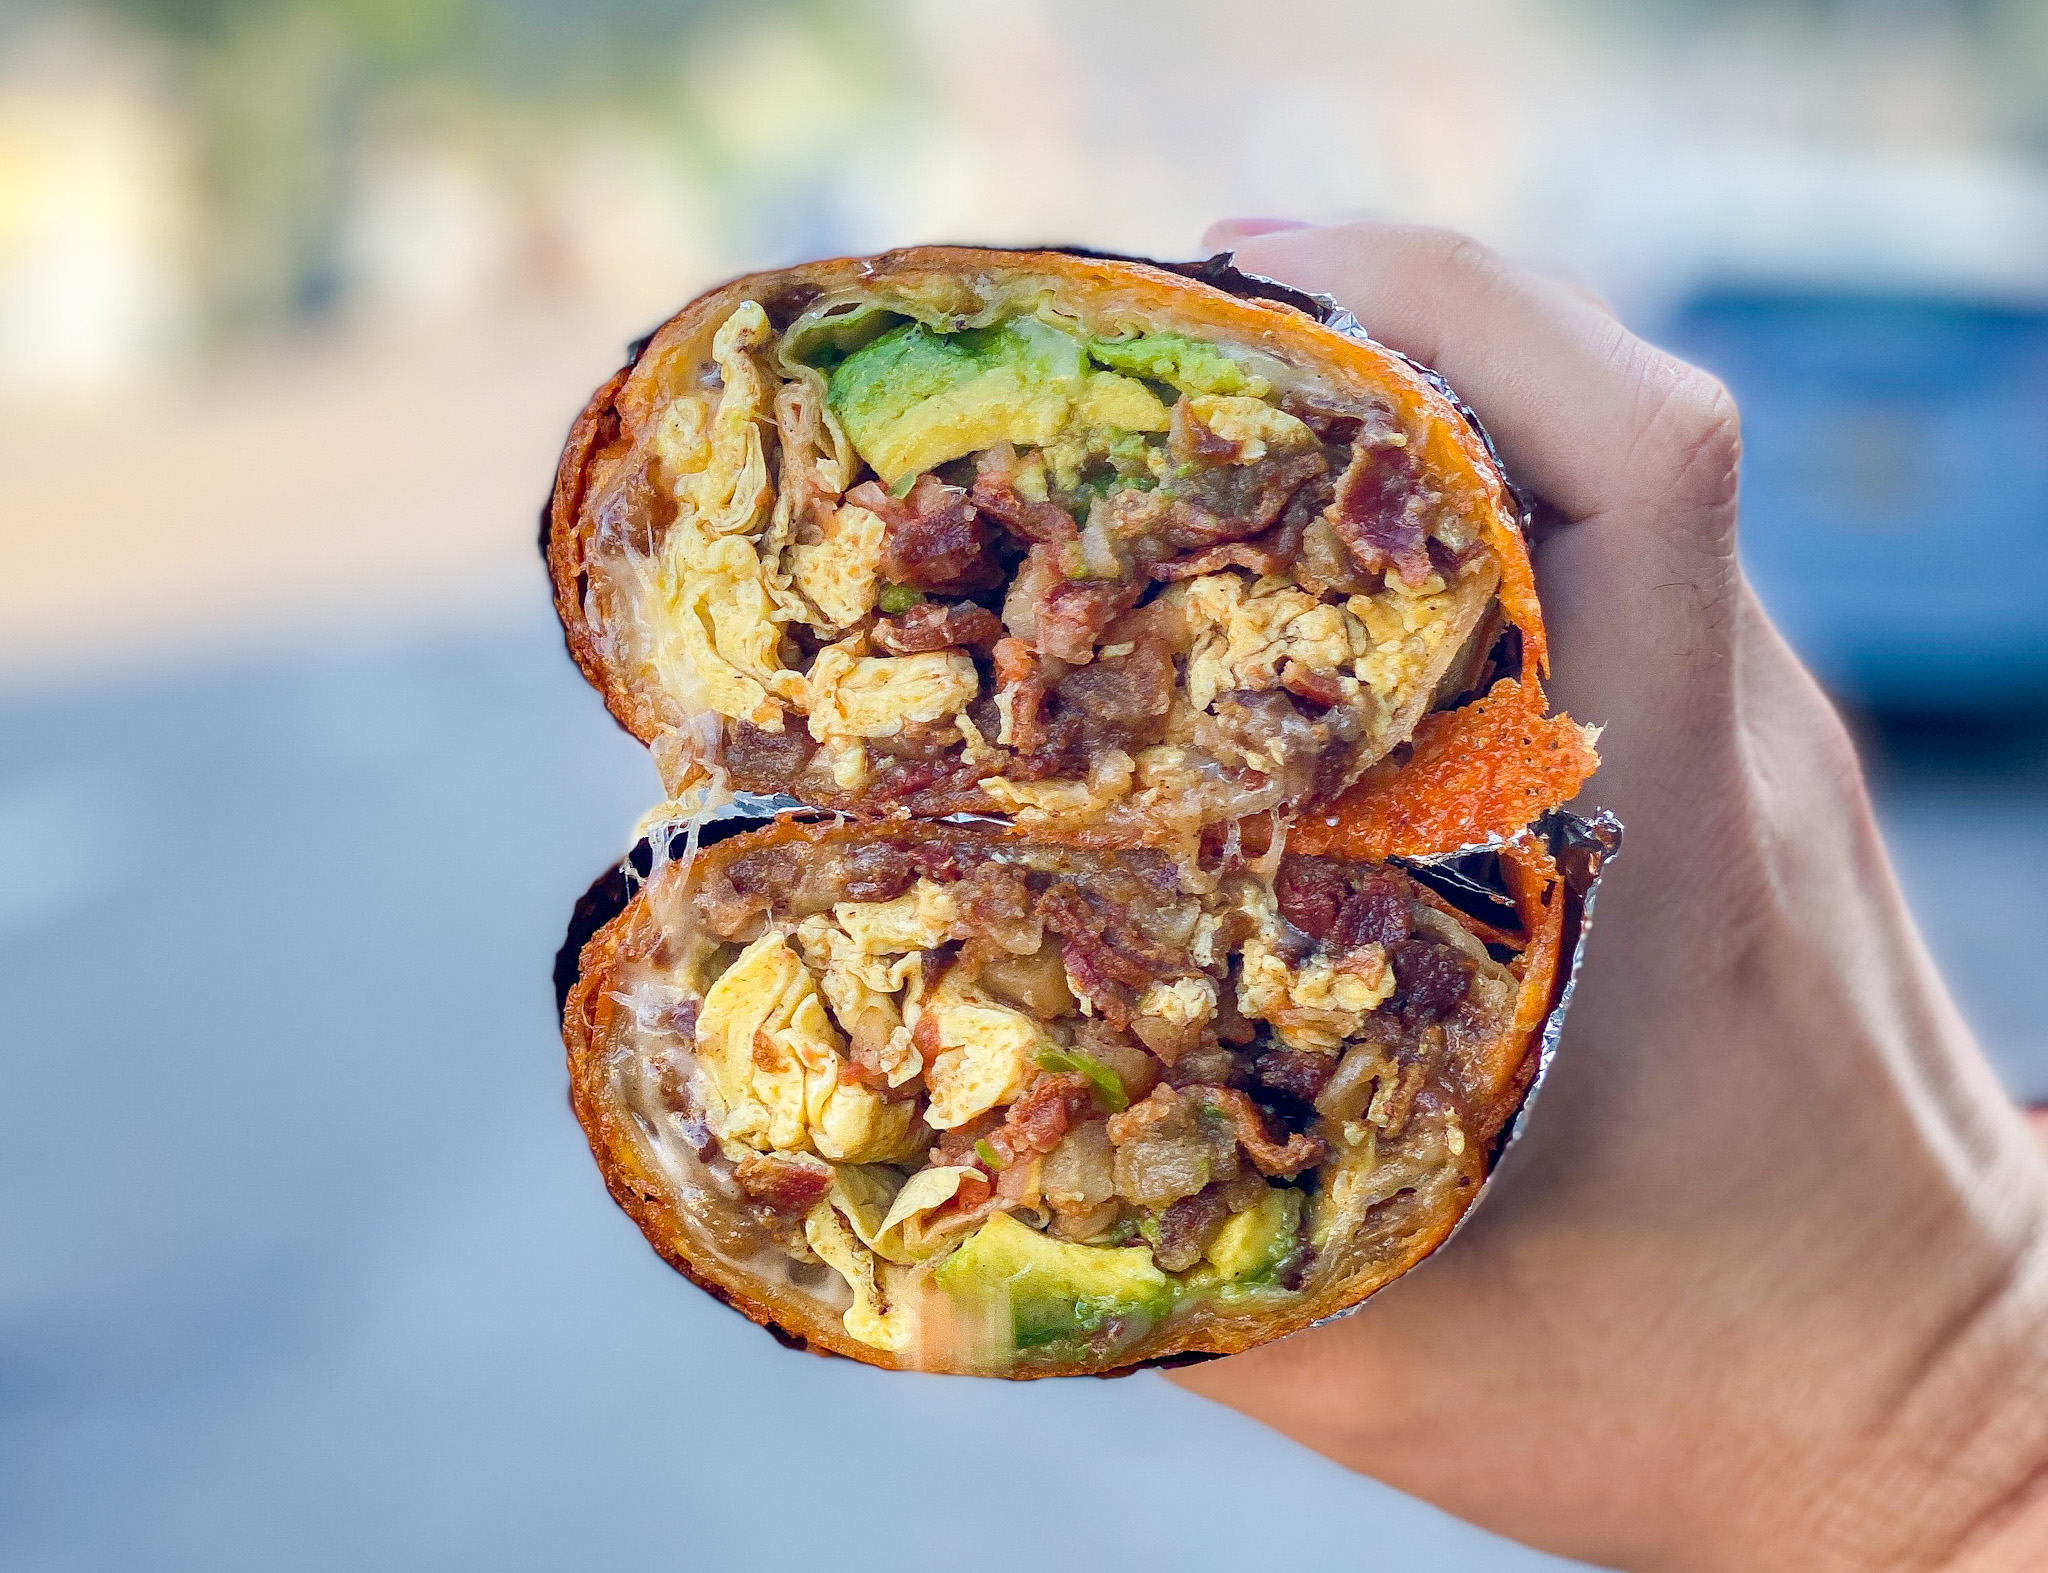 A split open breakfast burrito showing its innards, with a cheese wrap on the outside.